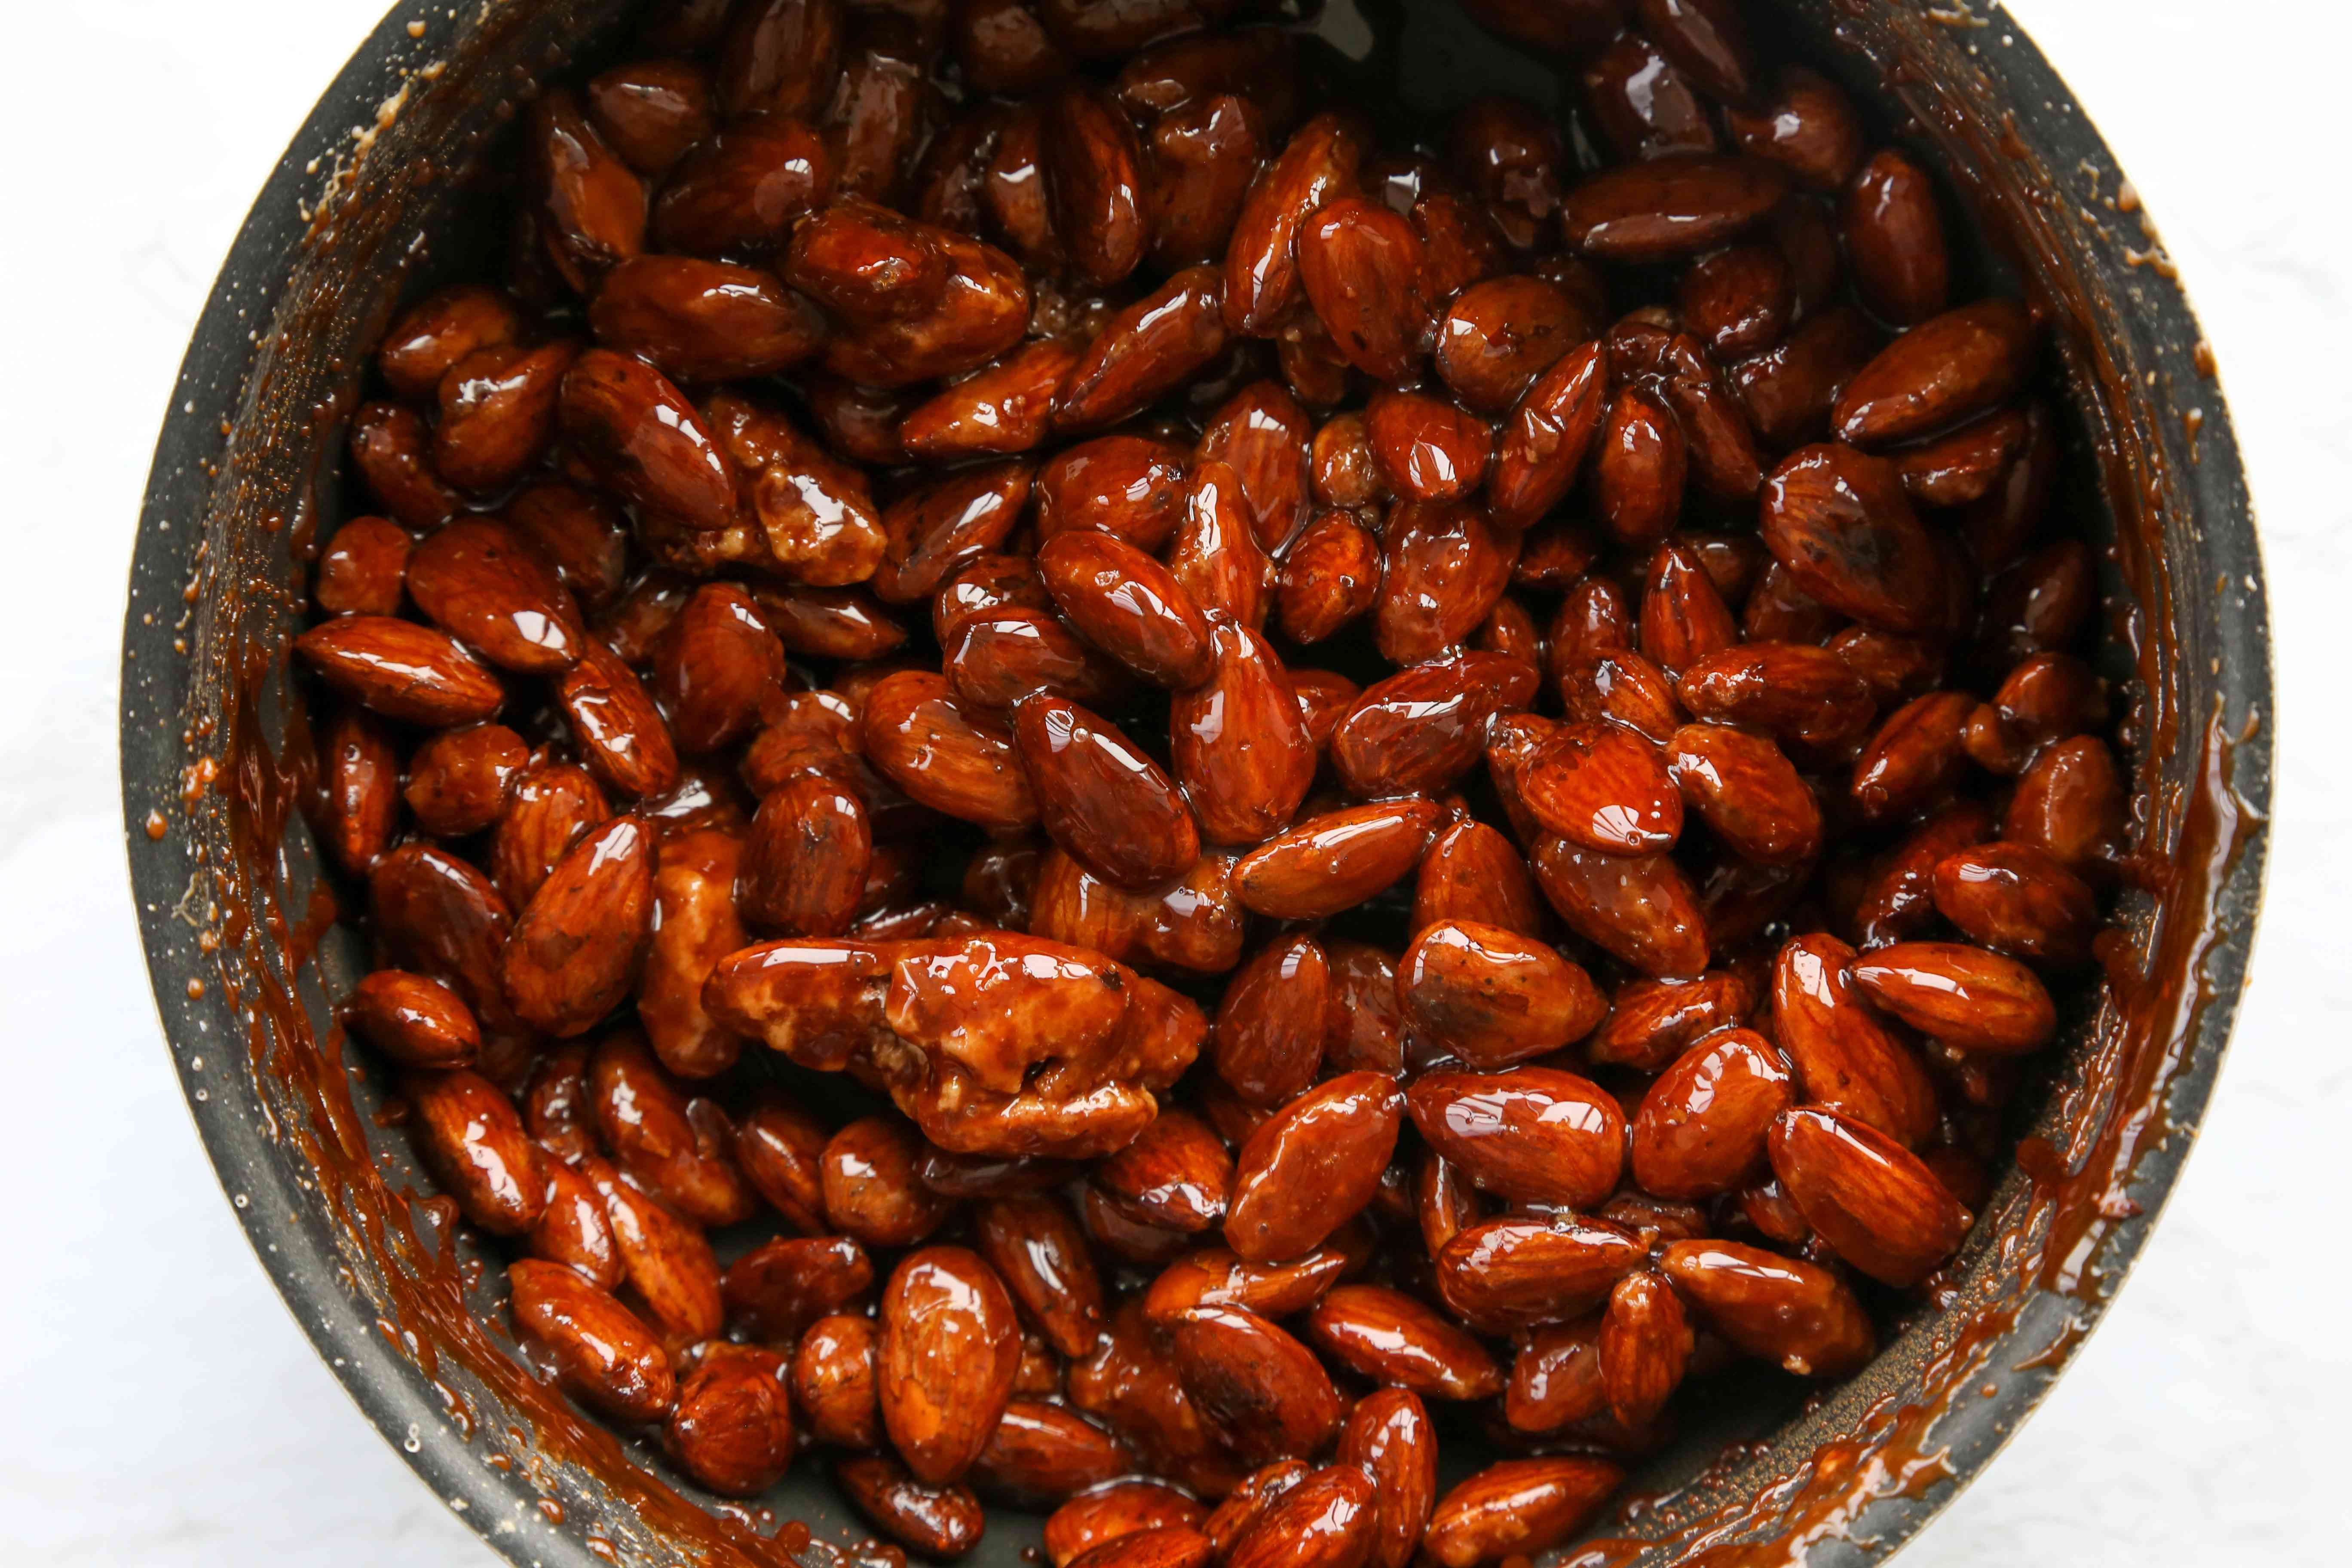 candied almonds in a pan